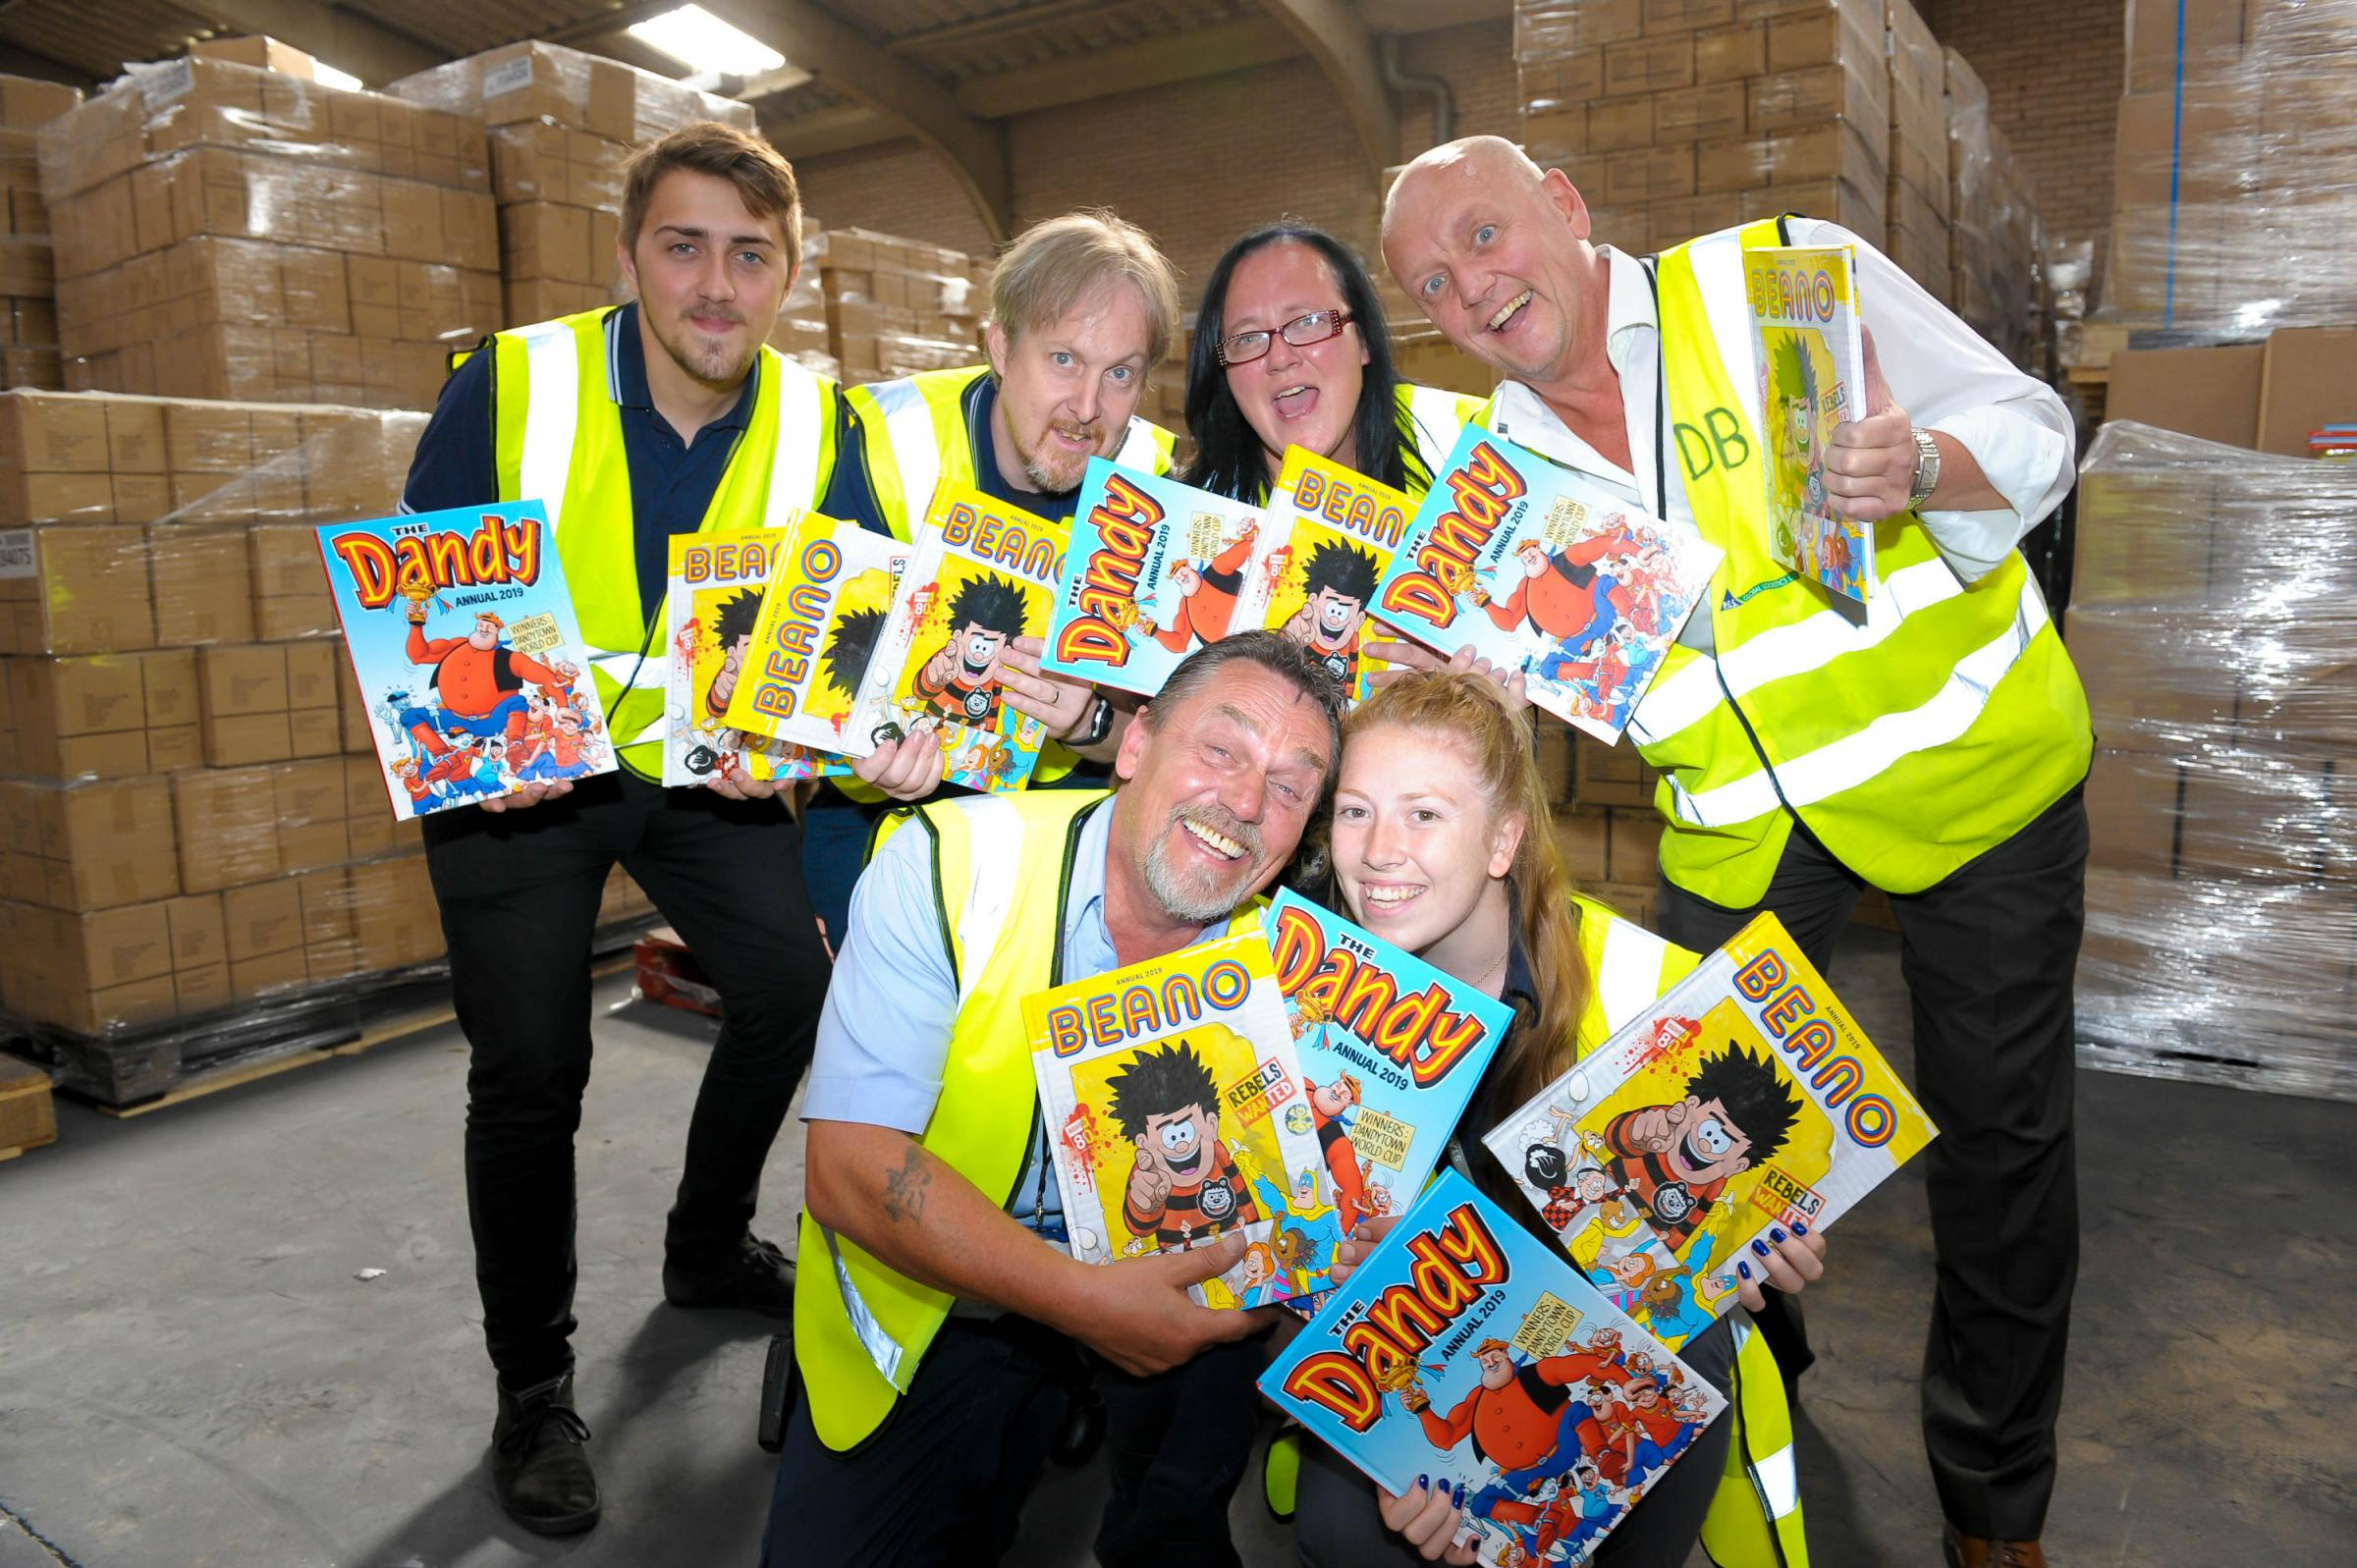 The PGS Global Logistics team with the Beano and Dandy albums.